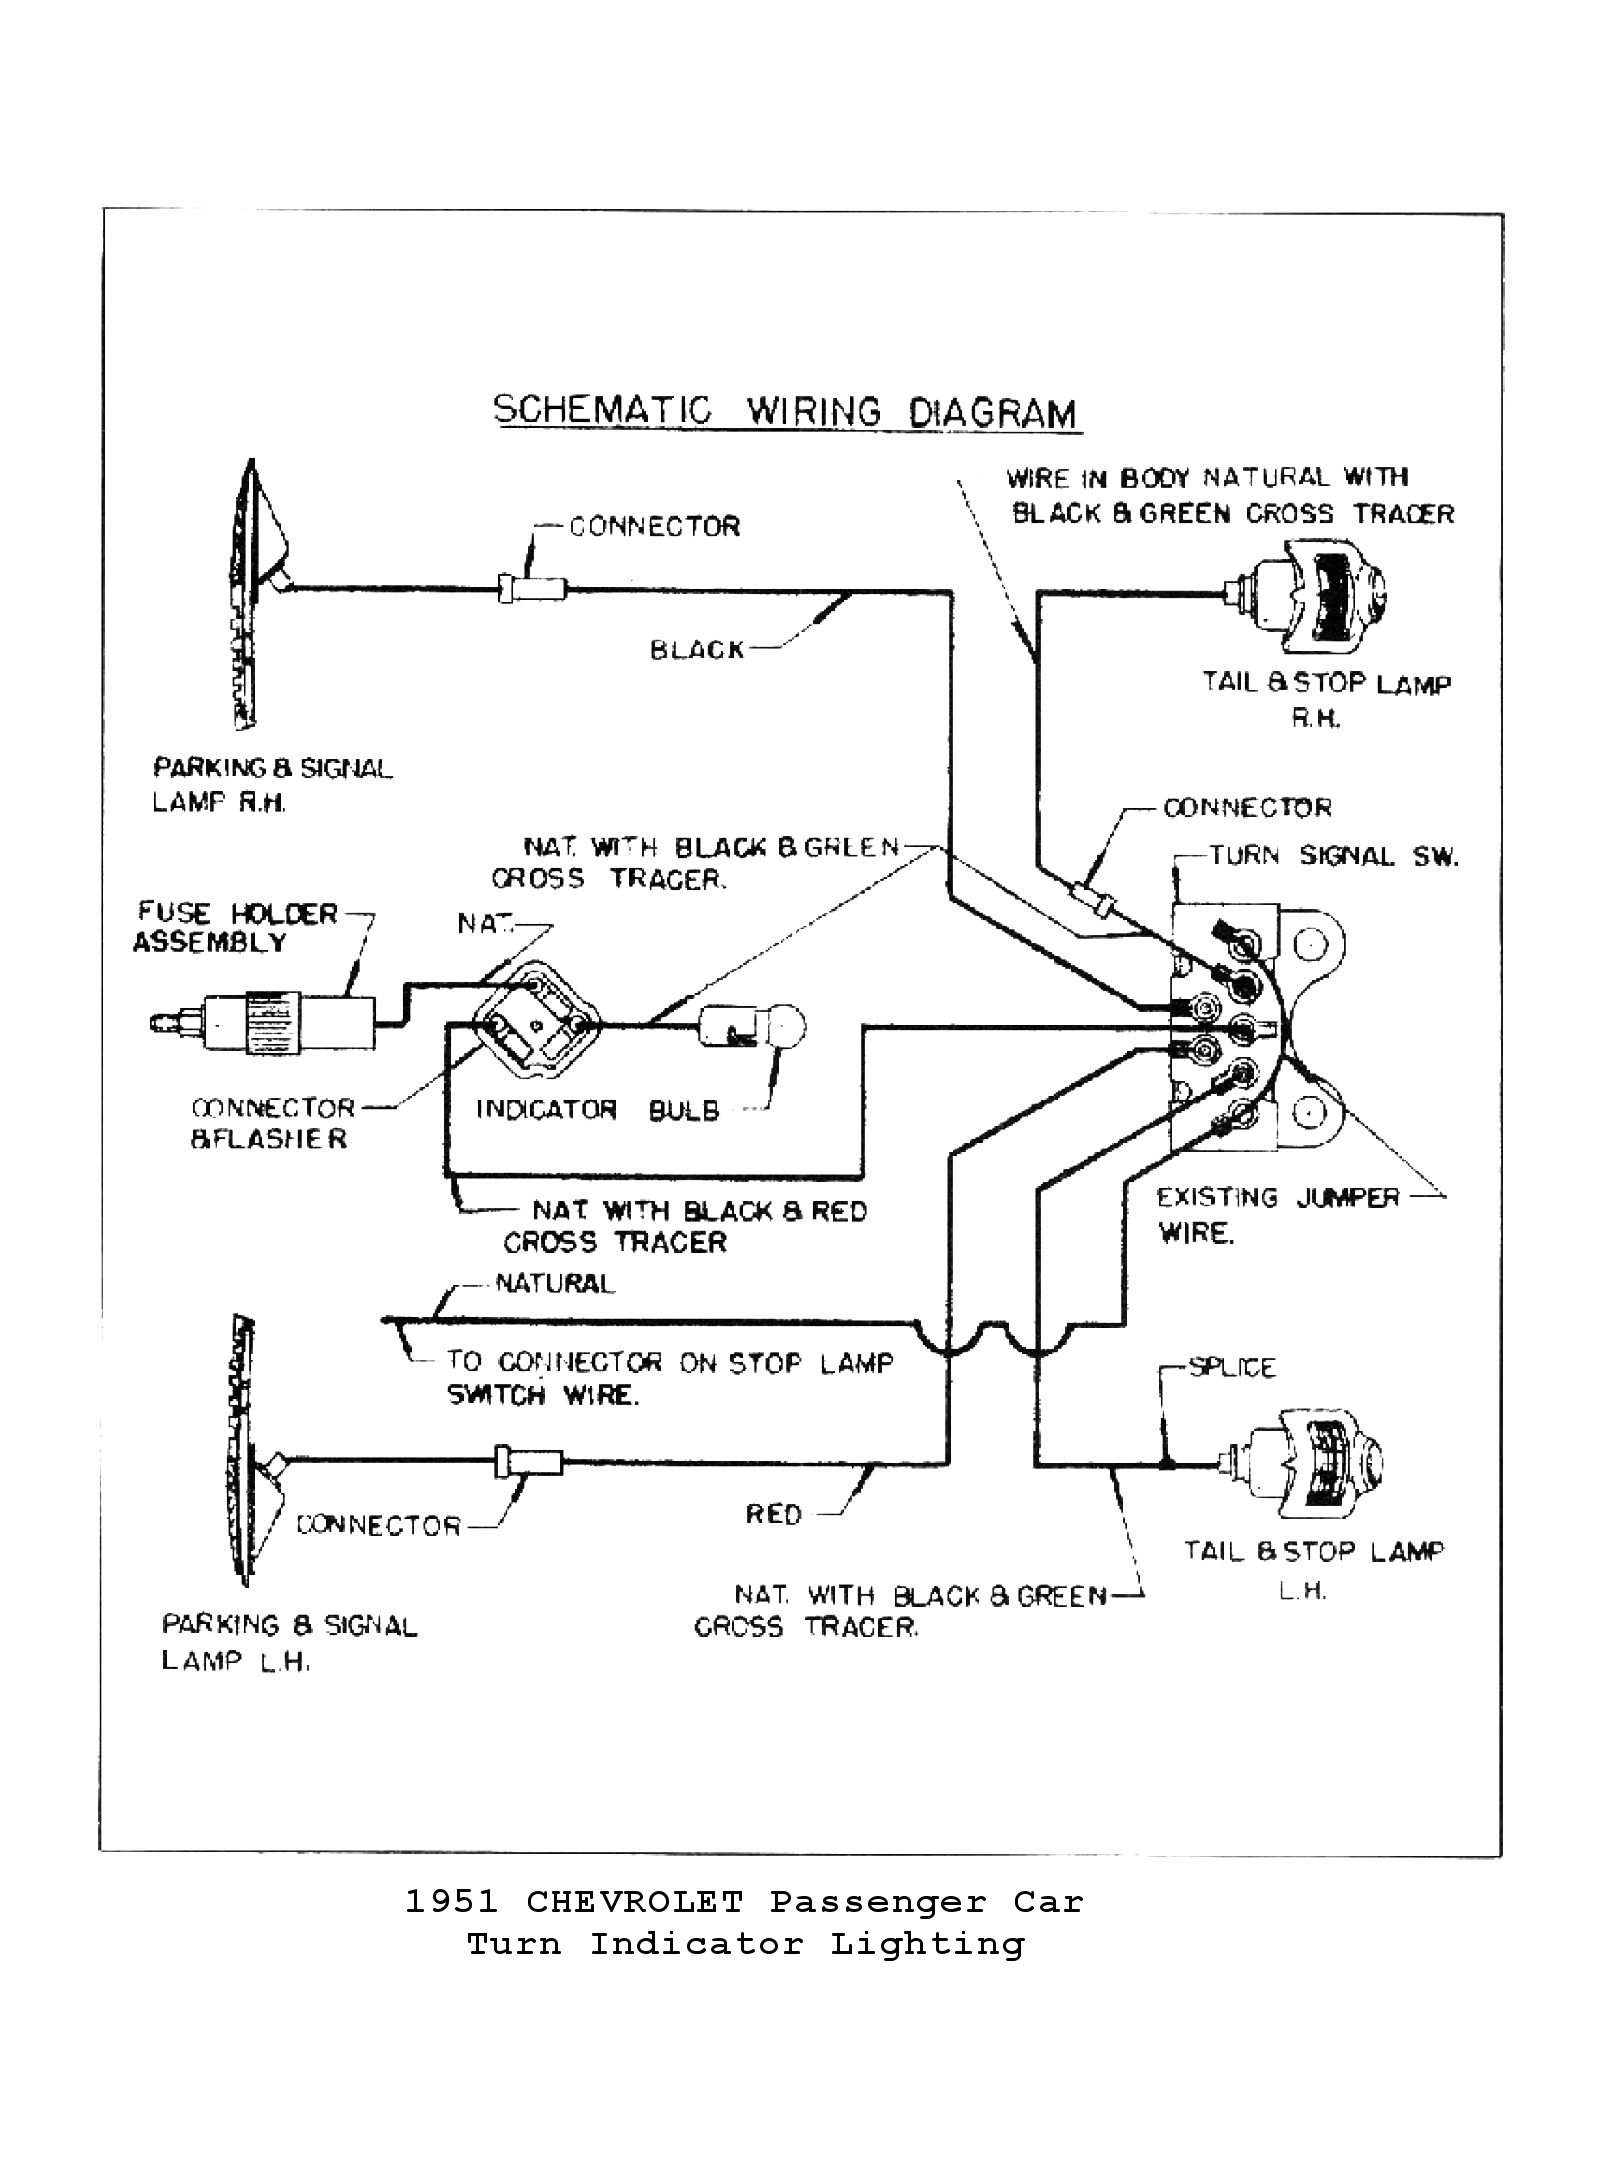 chevy wiring diagrams rh chevy oldcarmanualproject com 1953 Chevy Truck Wiring Diagram 93 Chevy Truck Wiring Diagram